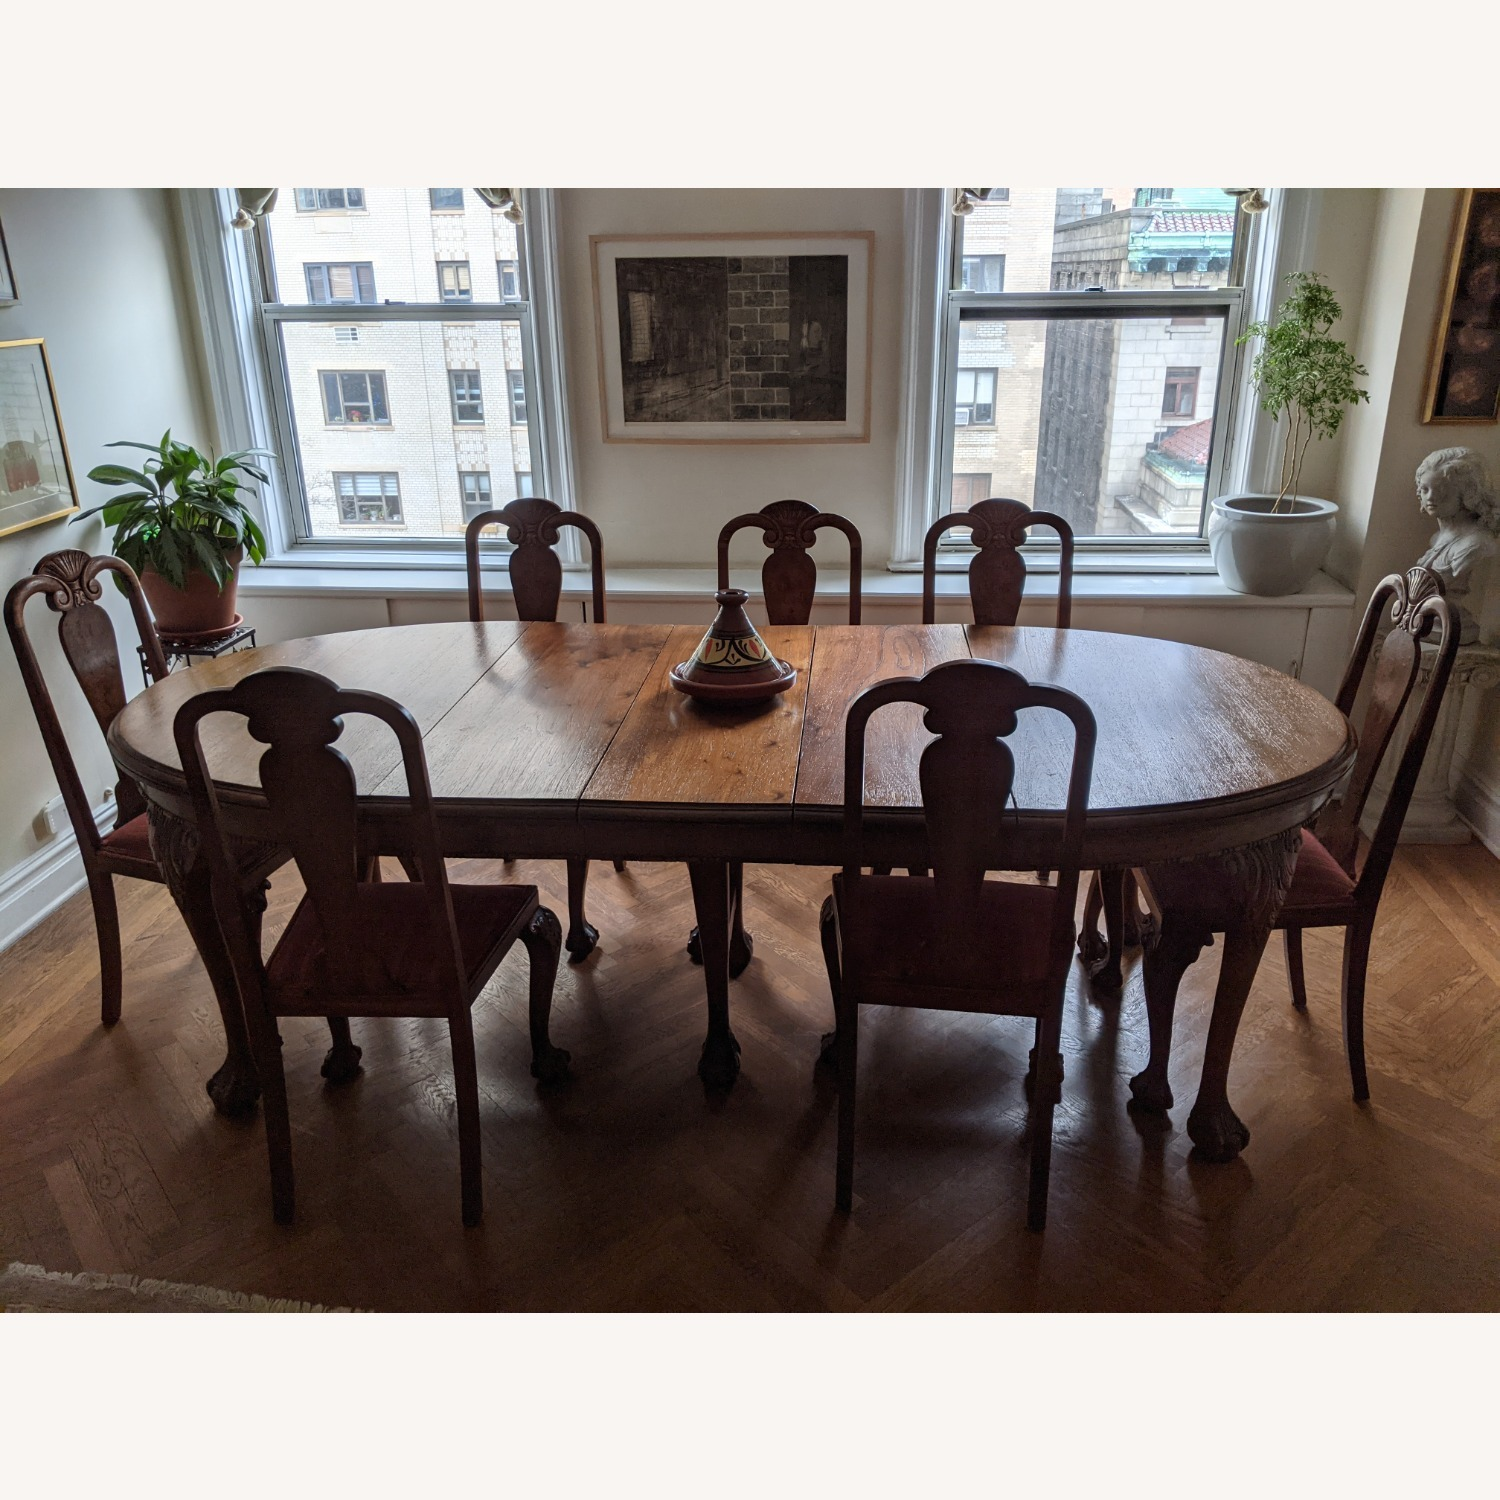 Early 20th Century Walnut Dining Table + Chairs - image-1